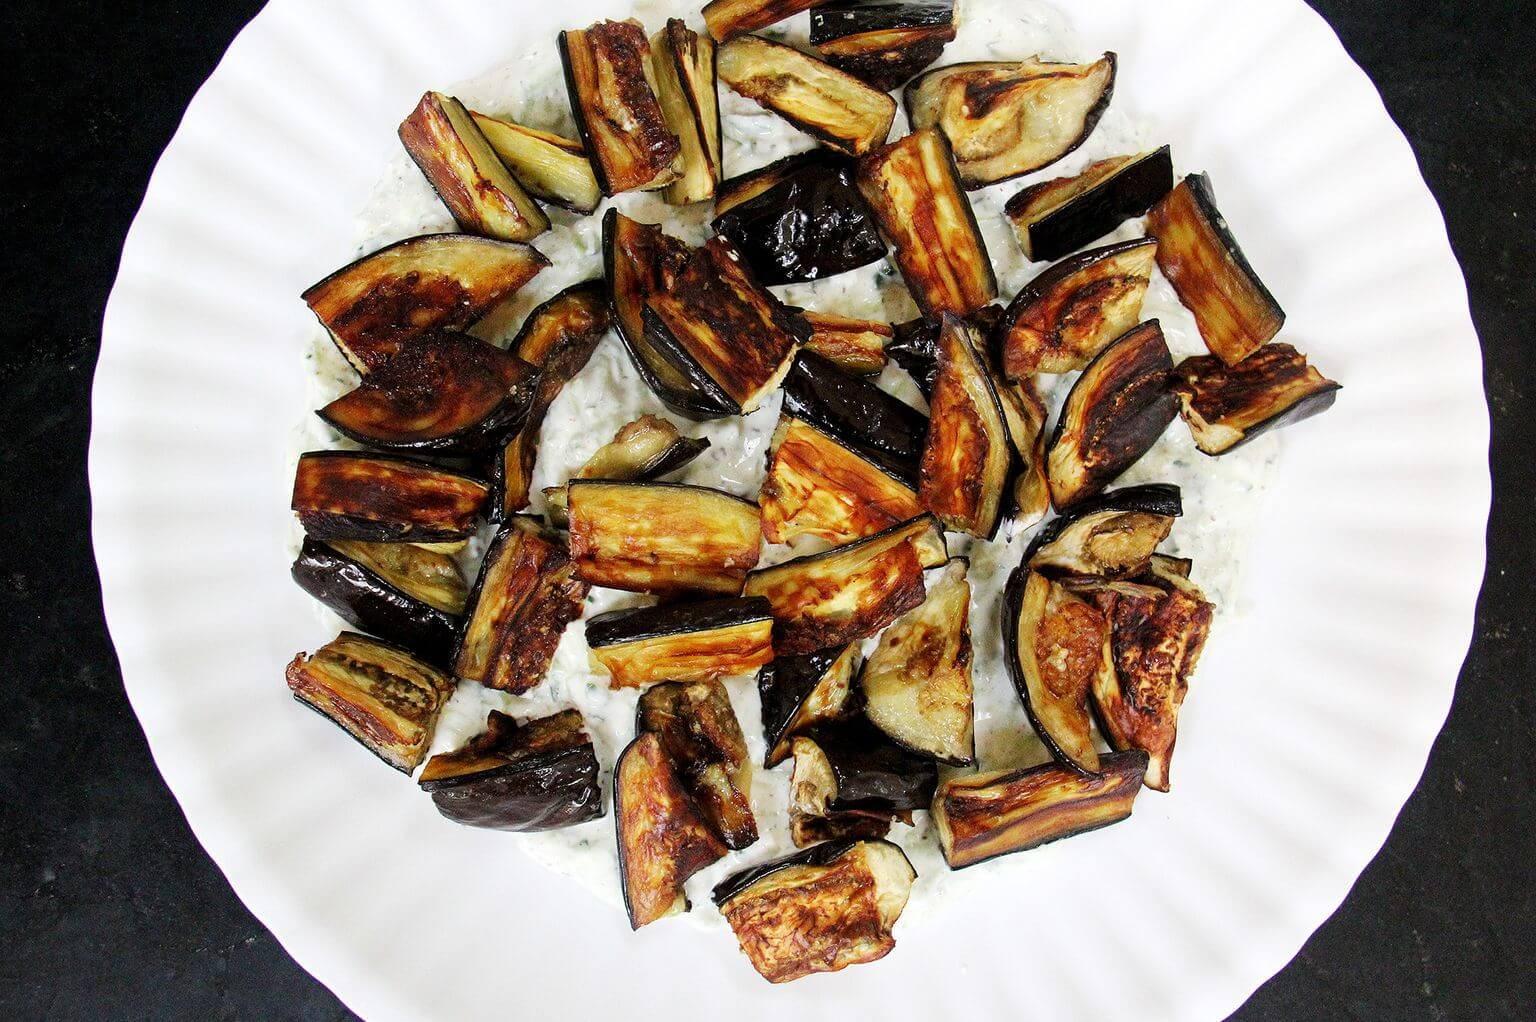 A platter with tzatziki smear and roasted eggplant.